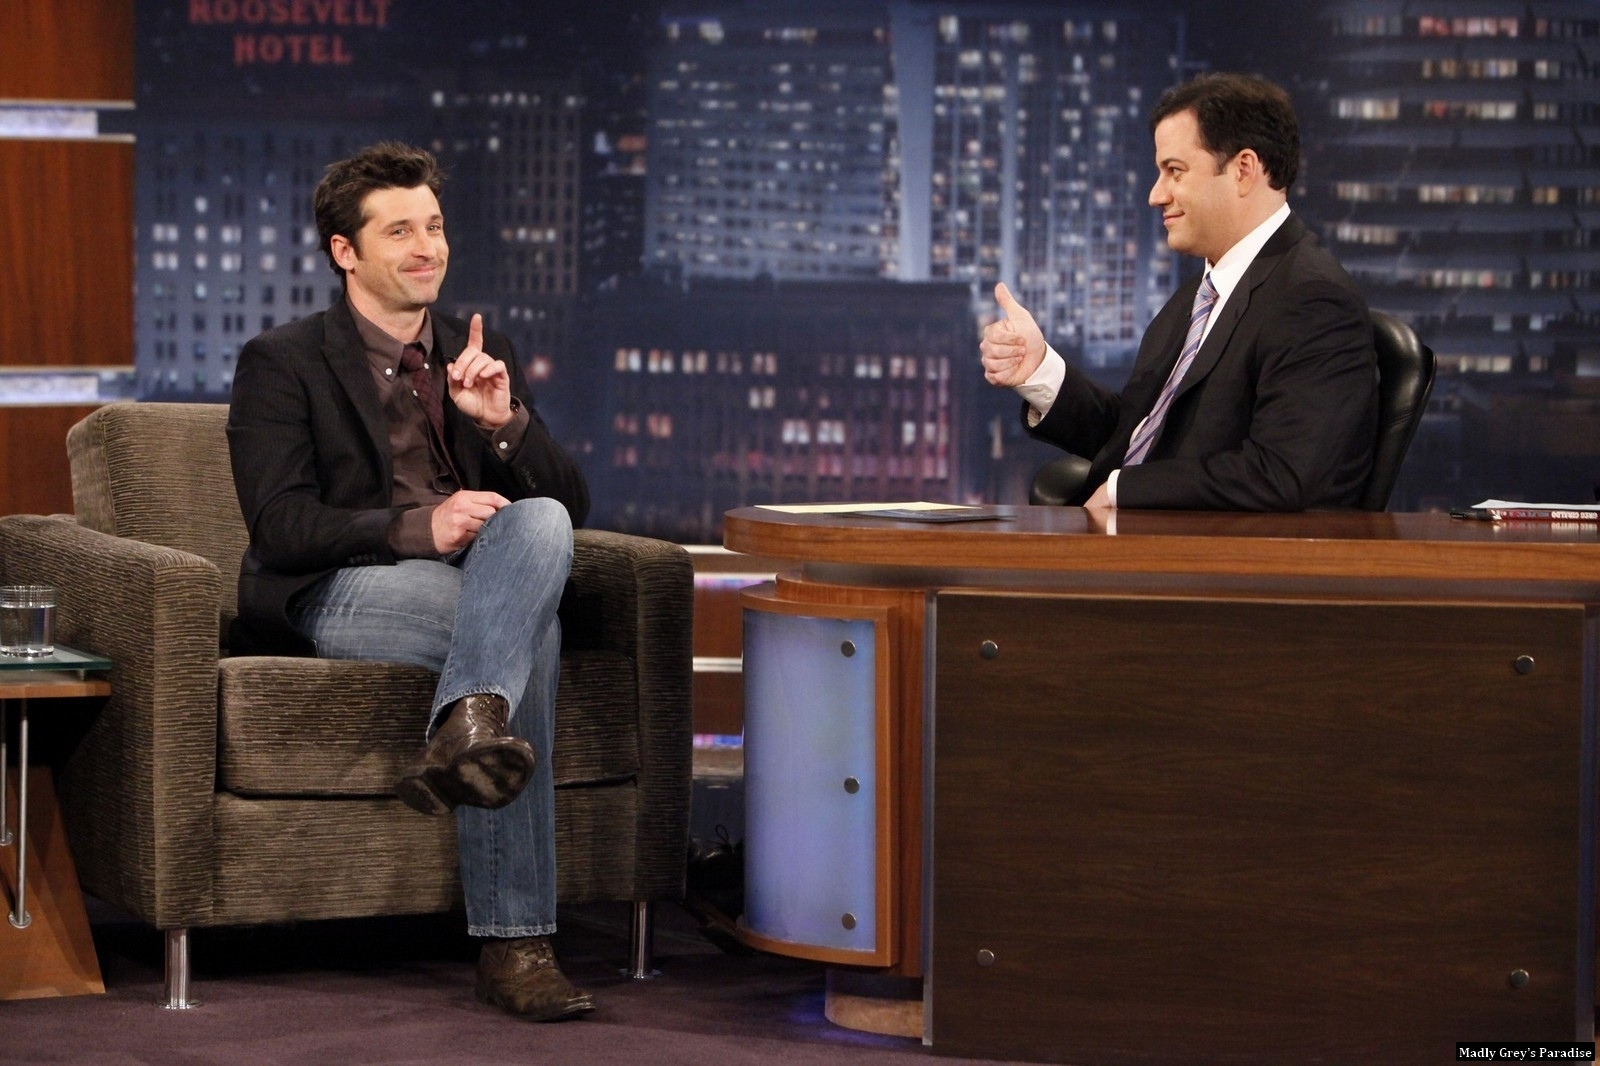 http://images2.fanpop.com/image/photos/10300000/Patrick-Dempsey-on-Jimmy-Kimmel-11-2-10-patrick-dempsey-10392529-1600-1066.jpg